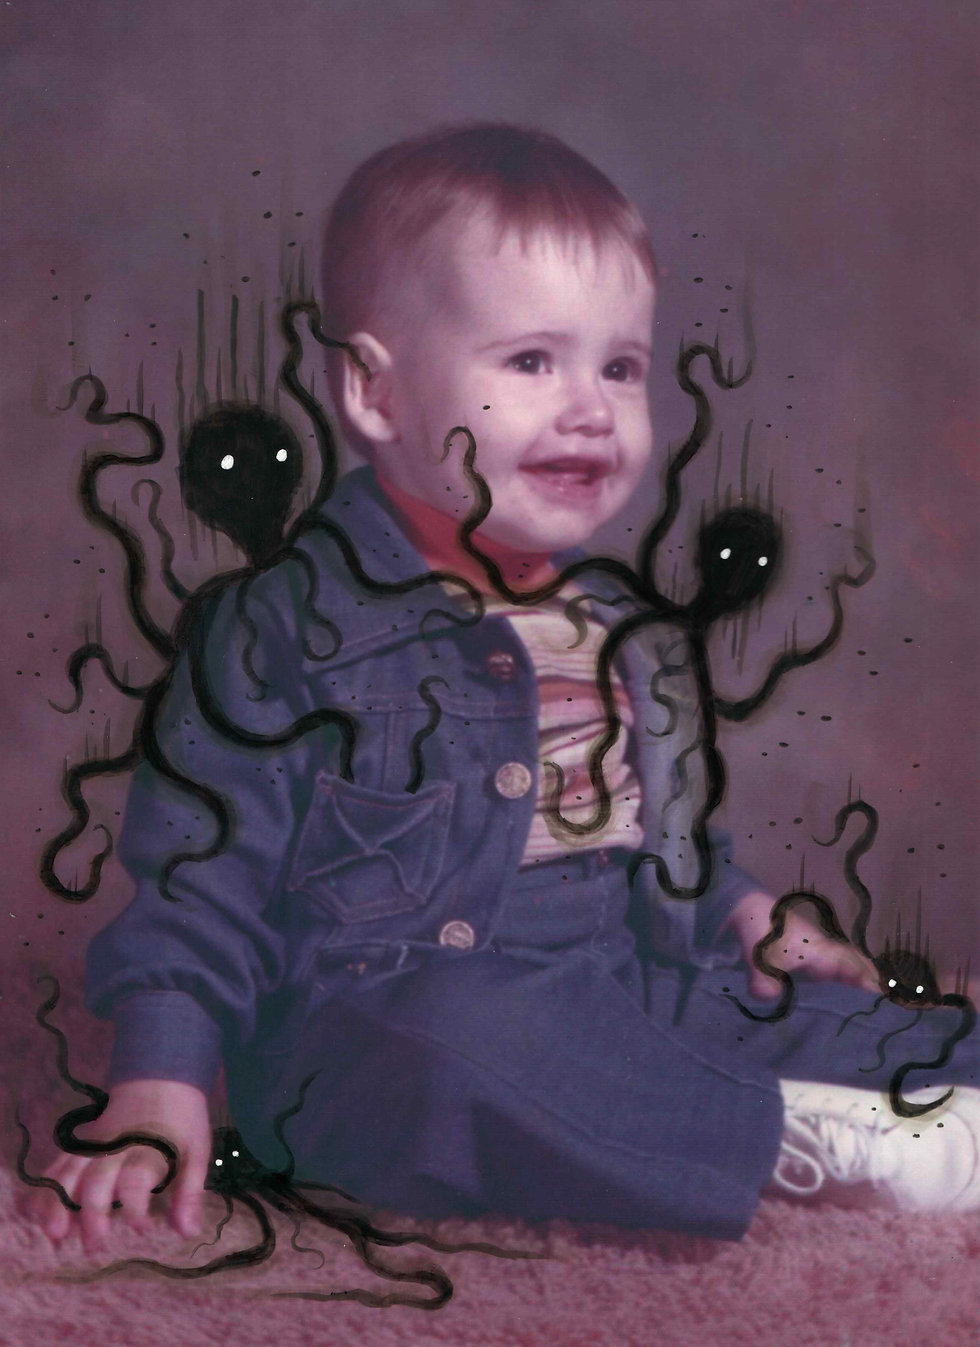 Baby Mark S Gagne with his ink monsters